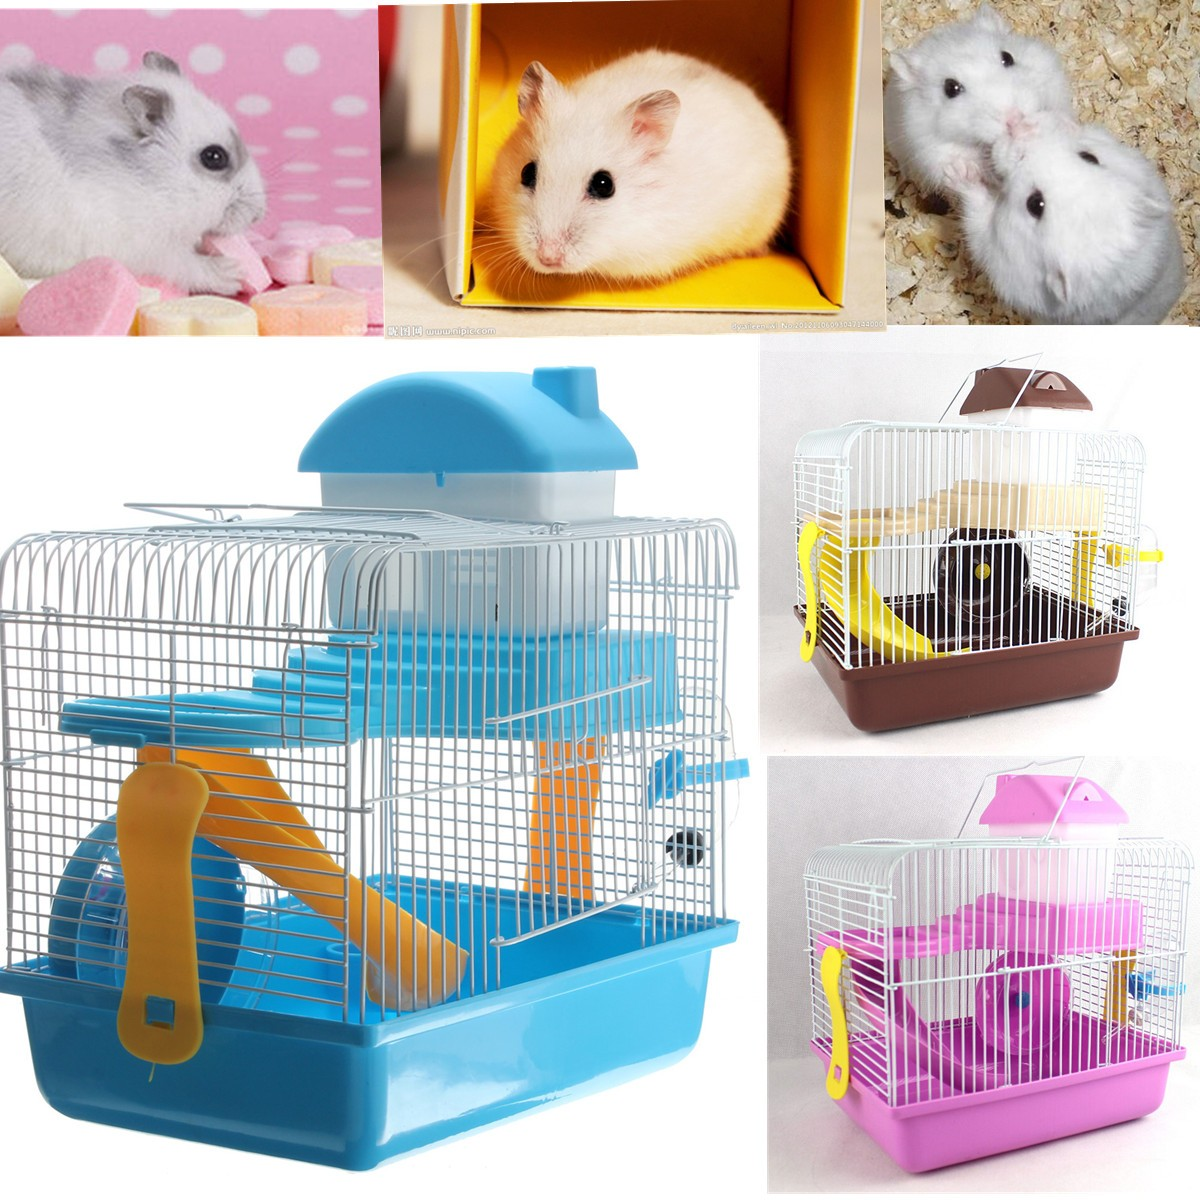 new cage hamster rongeur souris gerbille ratatouille petit. Black Bedroom Furniture Sets. Home Design Ideas